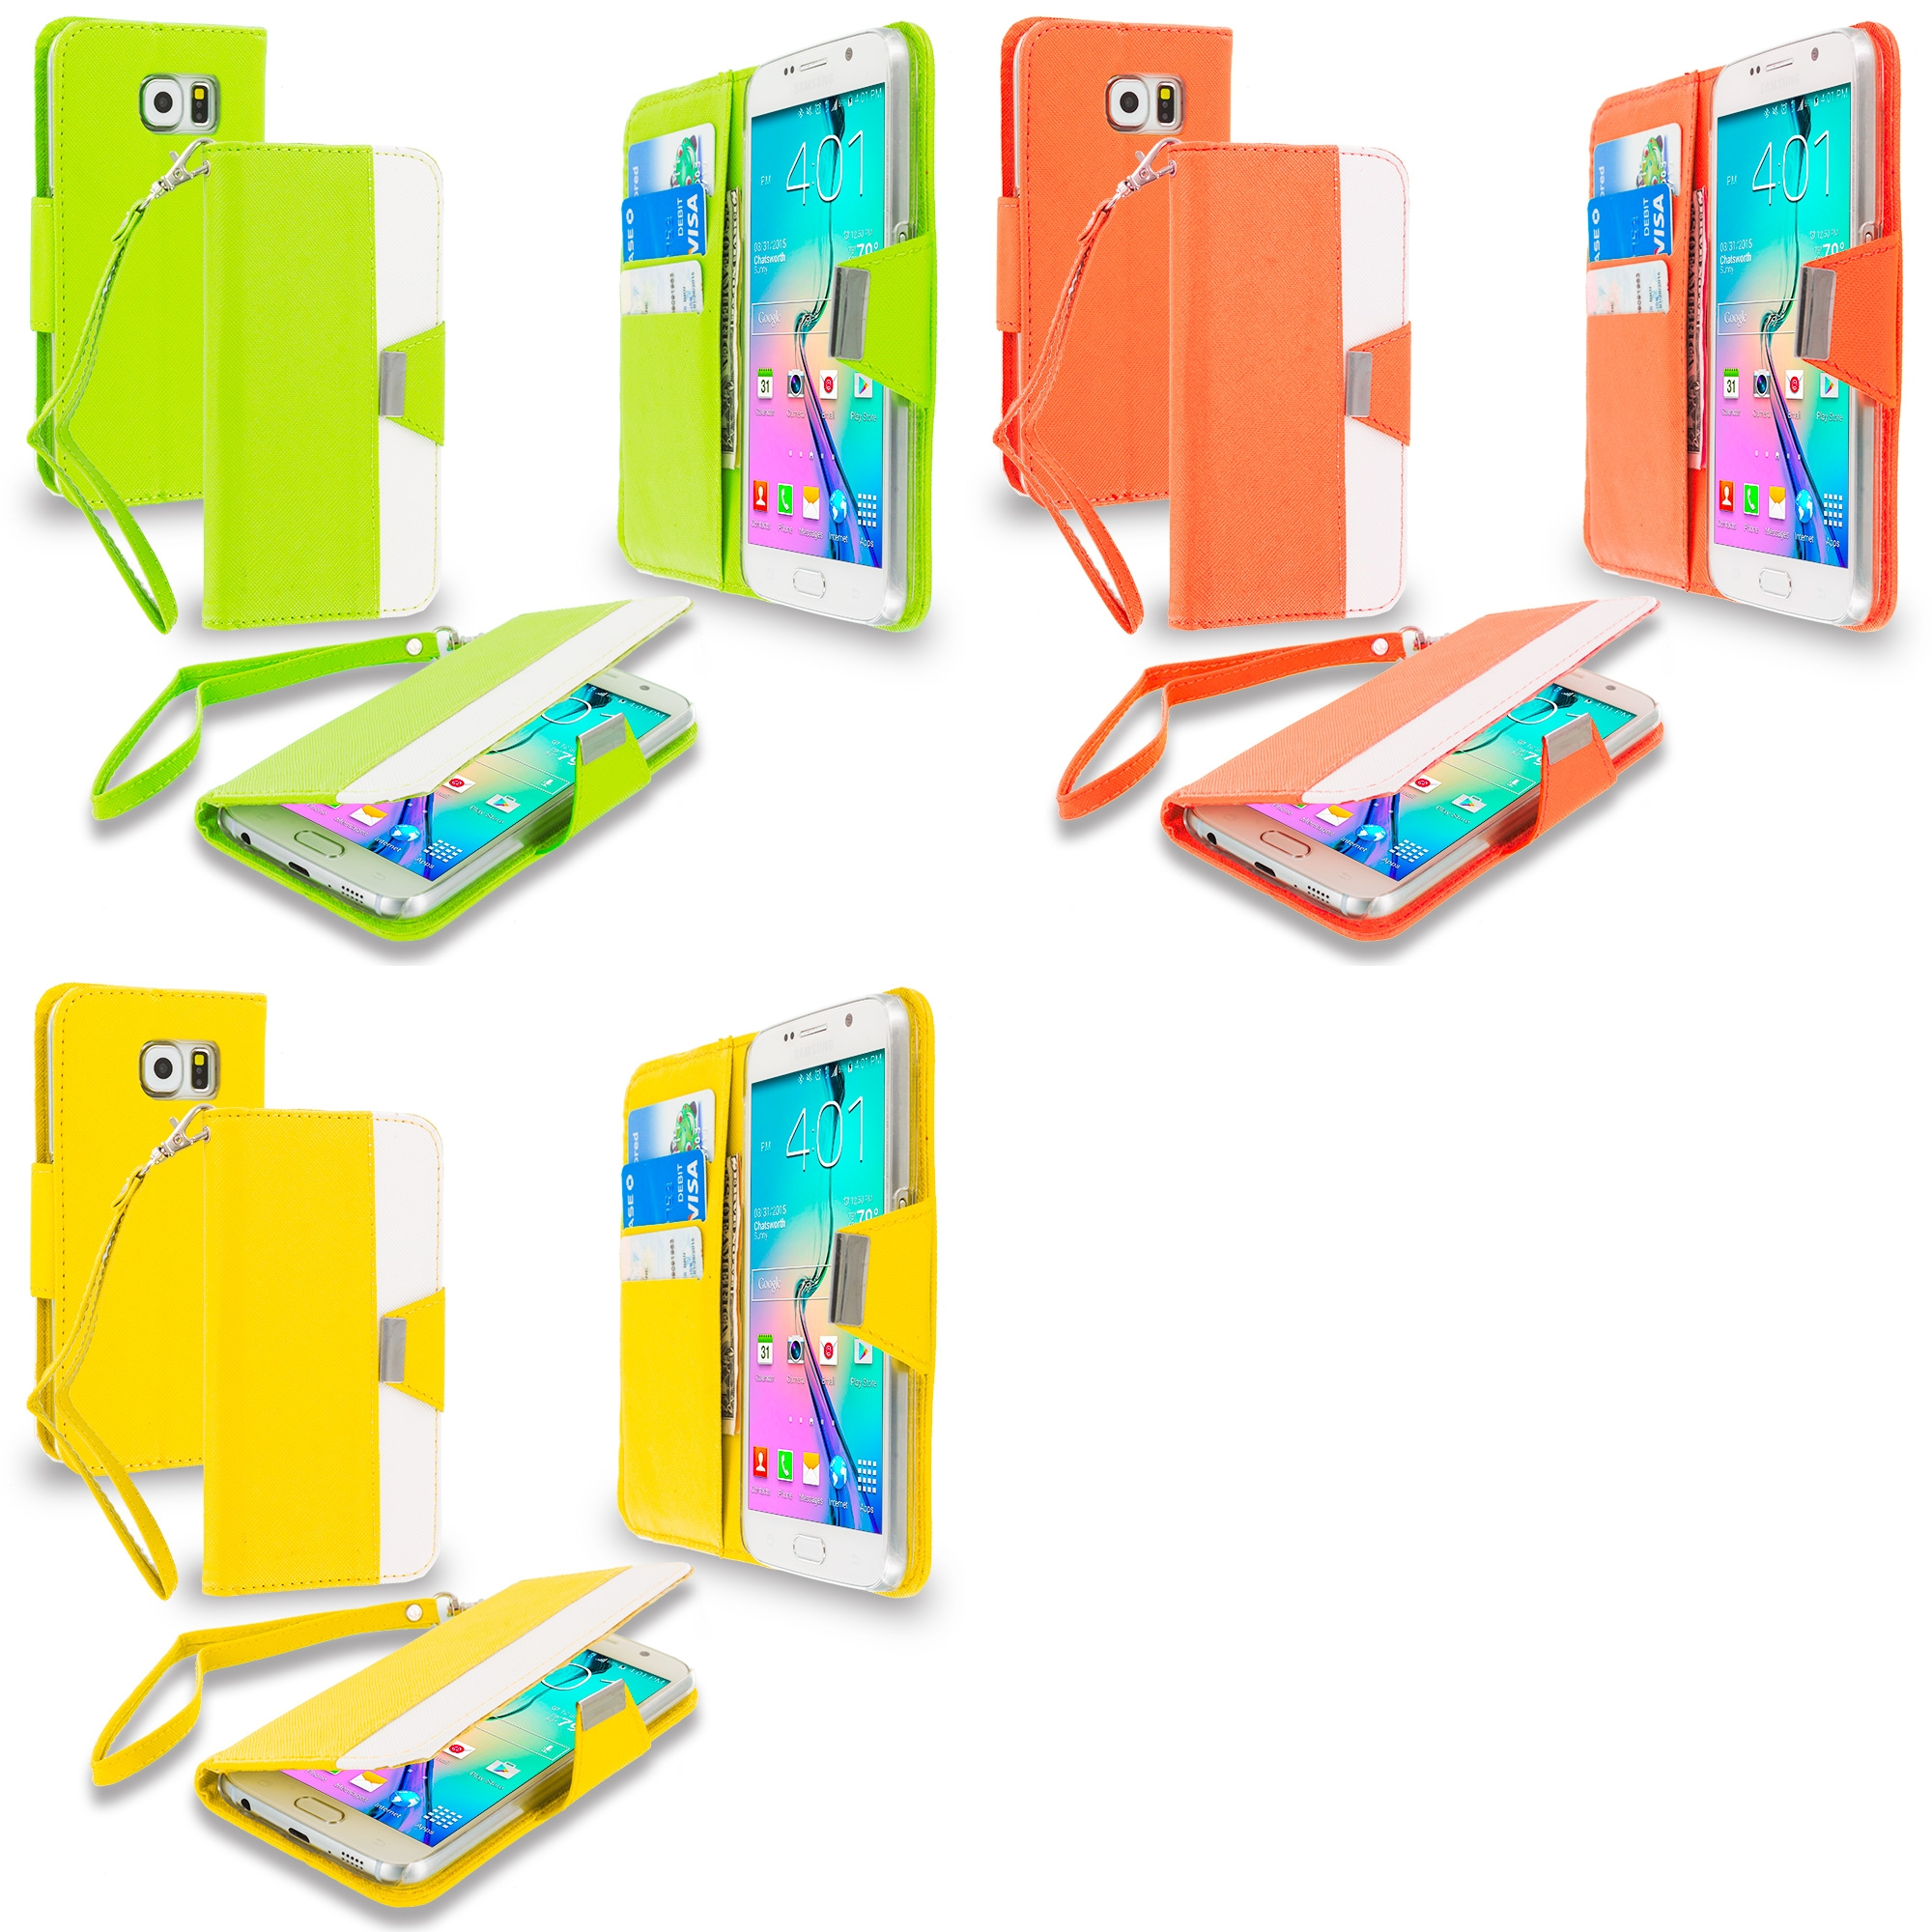 Samsung Galaxy S6 Combo Pack : Yellow Wallet Magnetic Metal Flap Case Cover With Card Slots